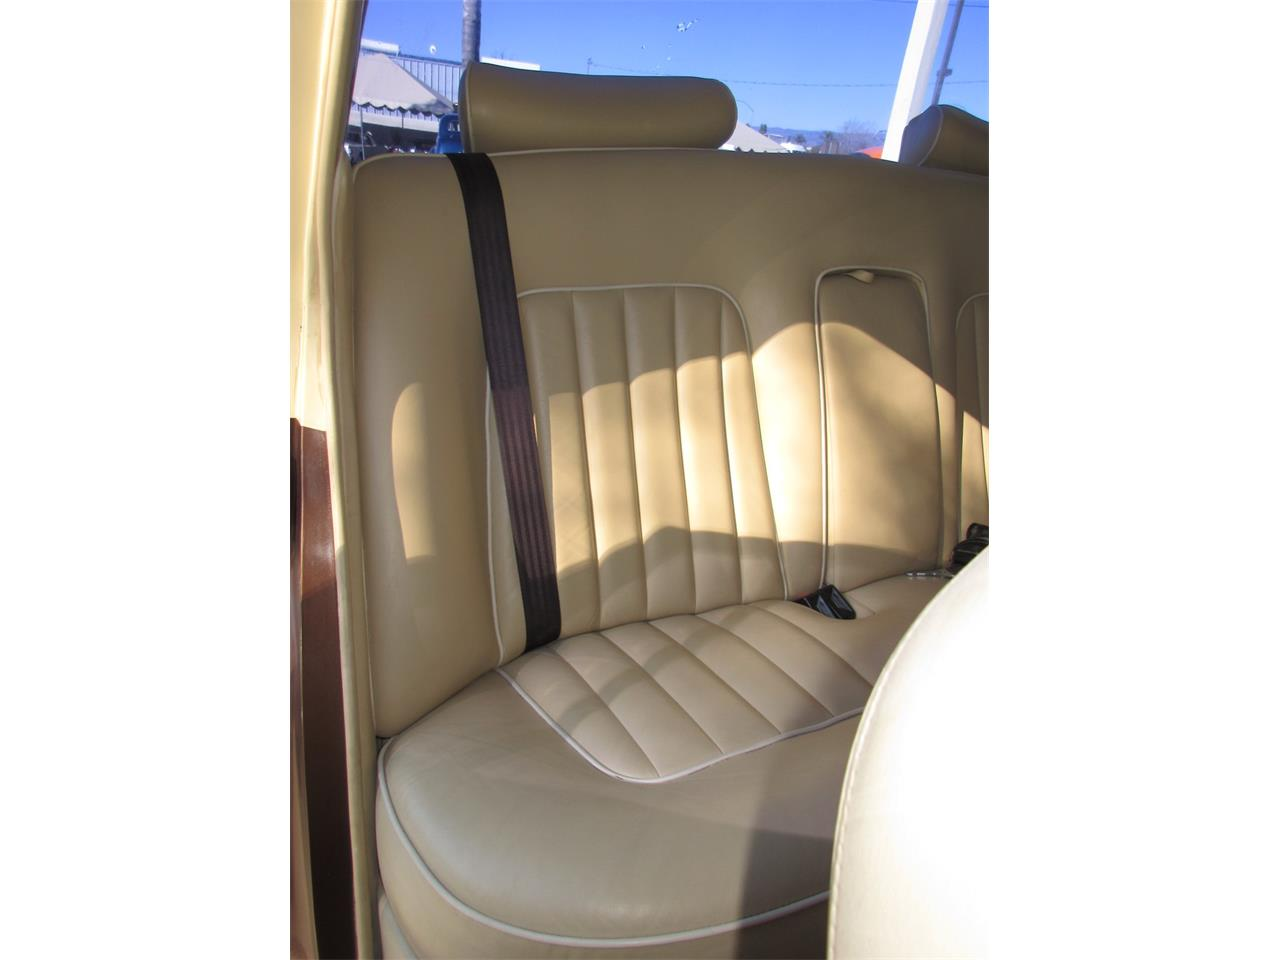 1978 Rolls-Royce Silver Cloud II for sale in Redlands, CA – photo 24